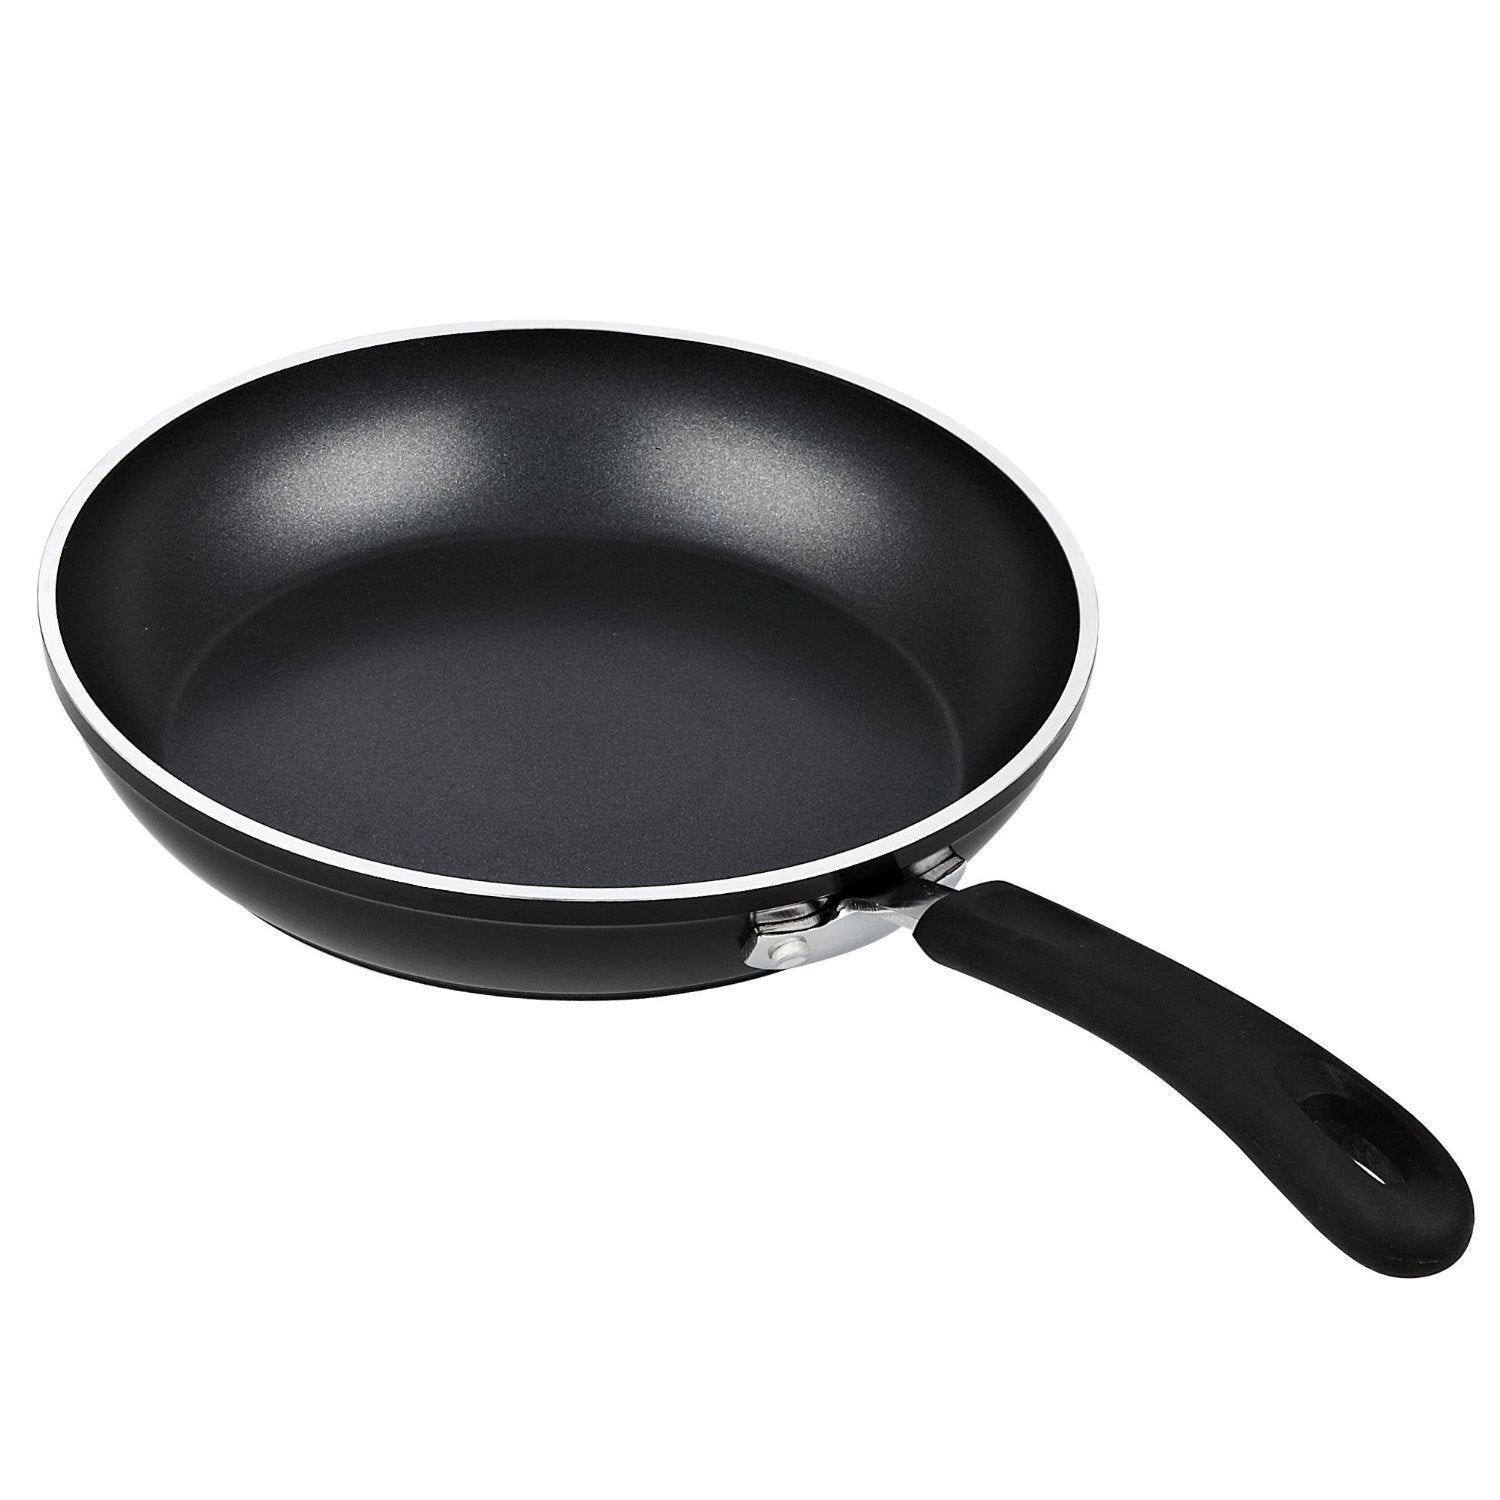 Cook N Home 3 Piece Frying Pan Saute Pan Set With Nonstick Coating Induction Compatible Bottom 8 10 12 Black Overstock 11741304